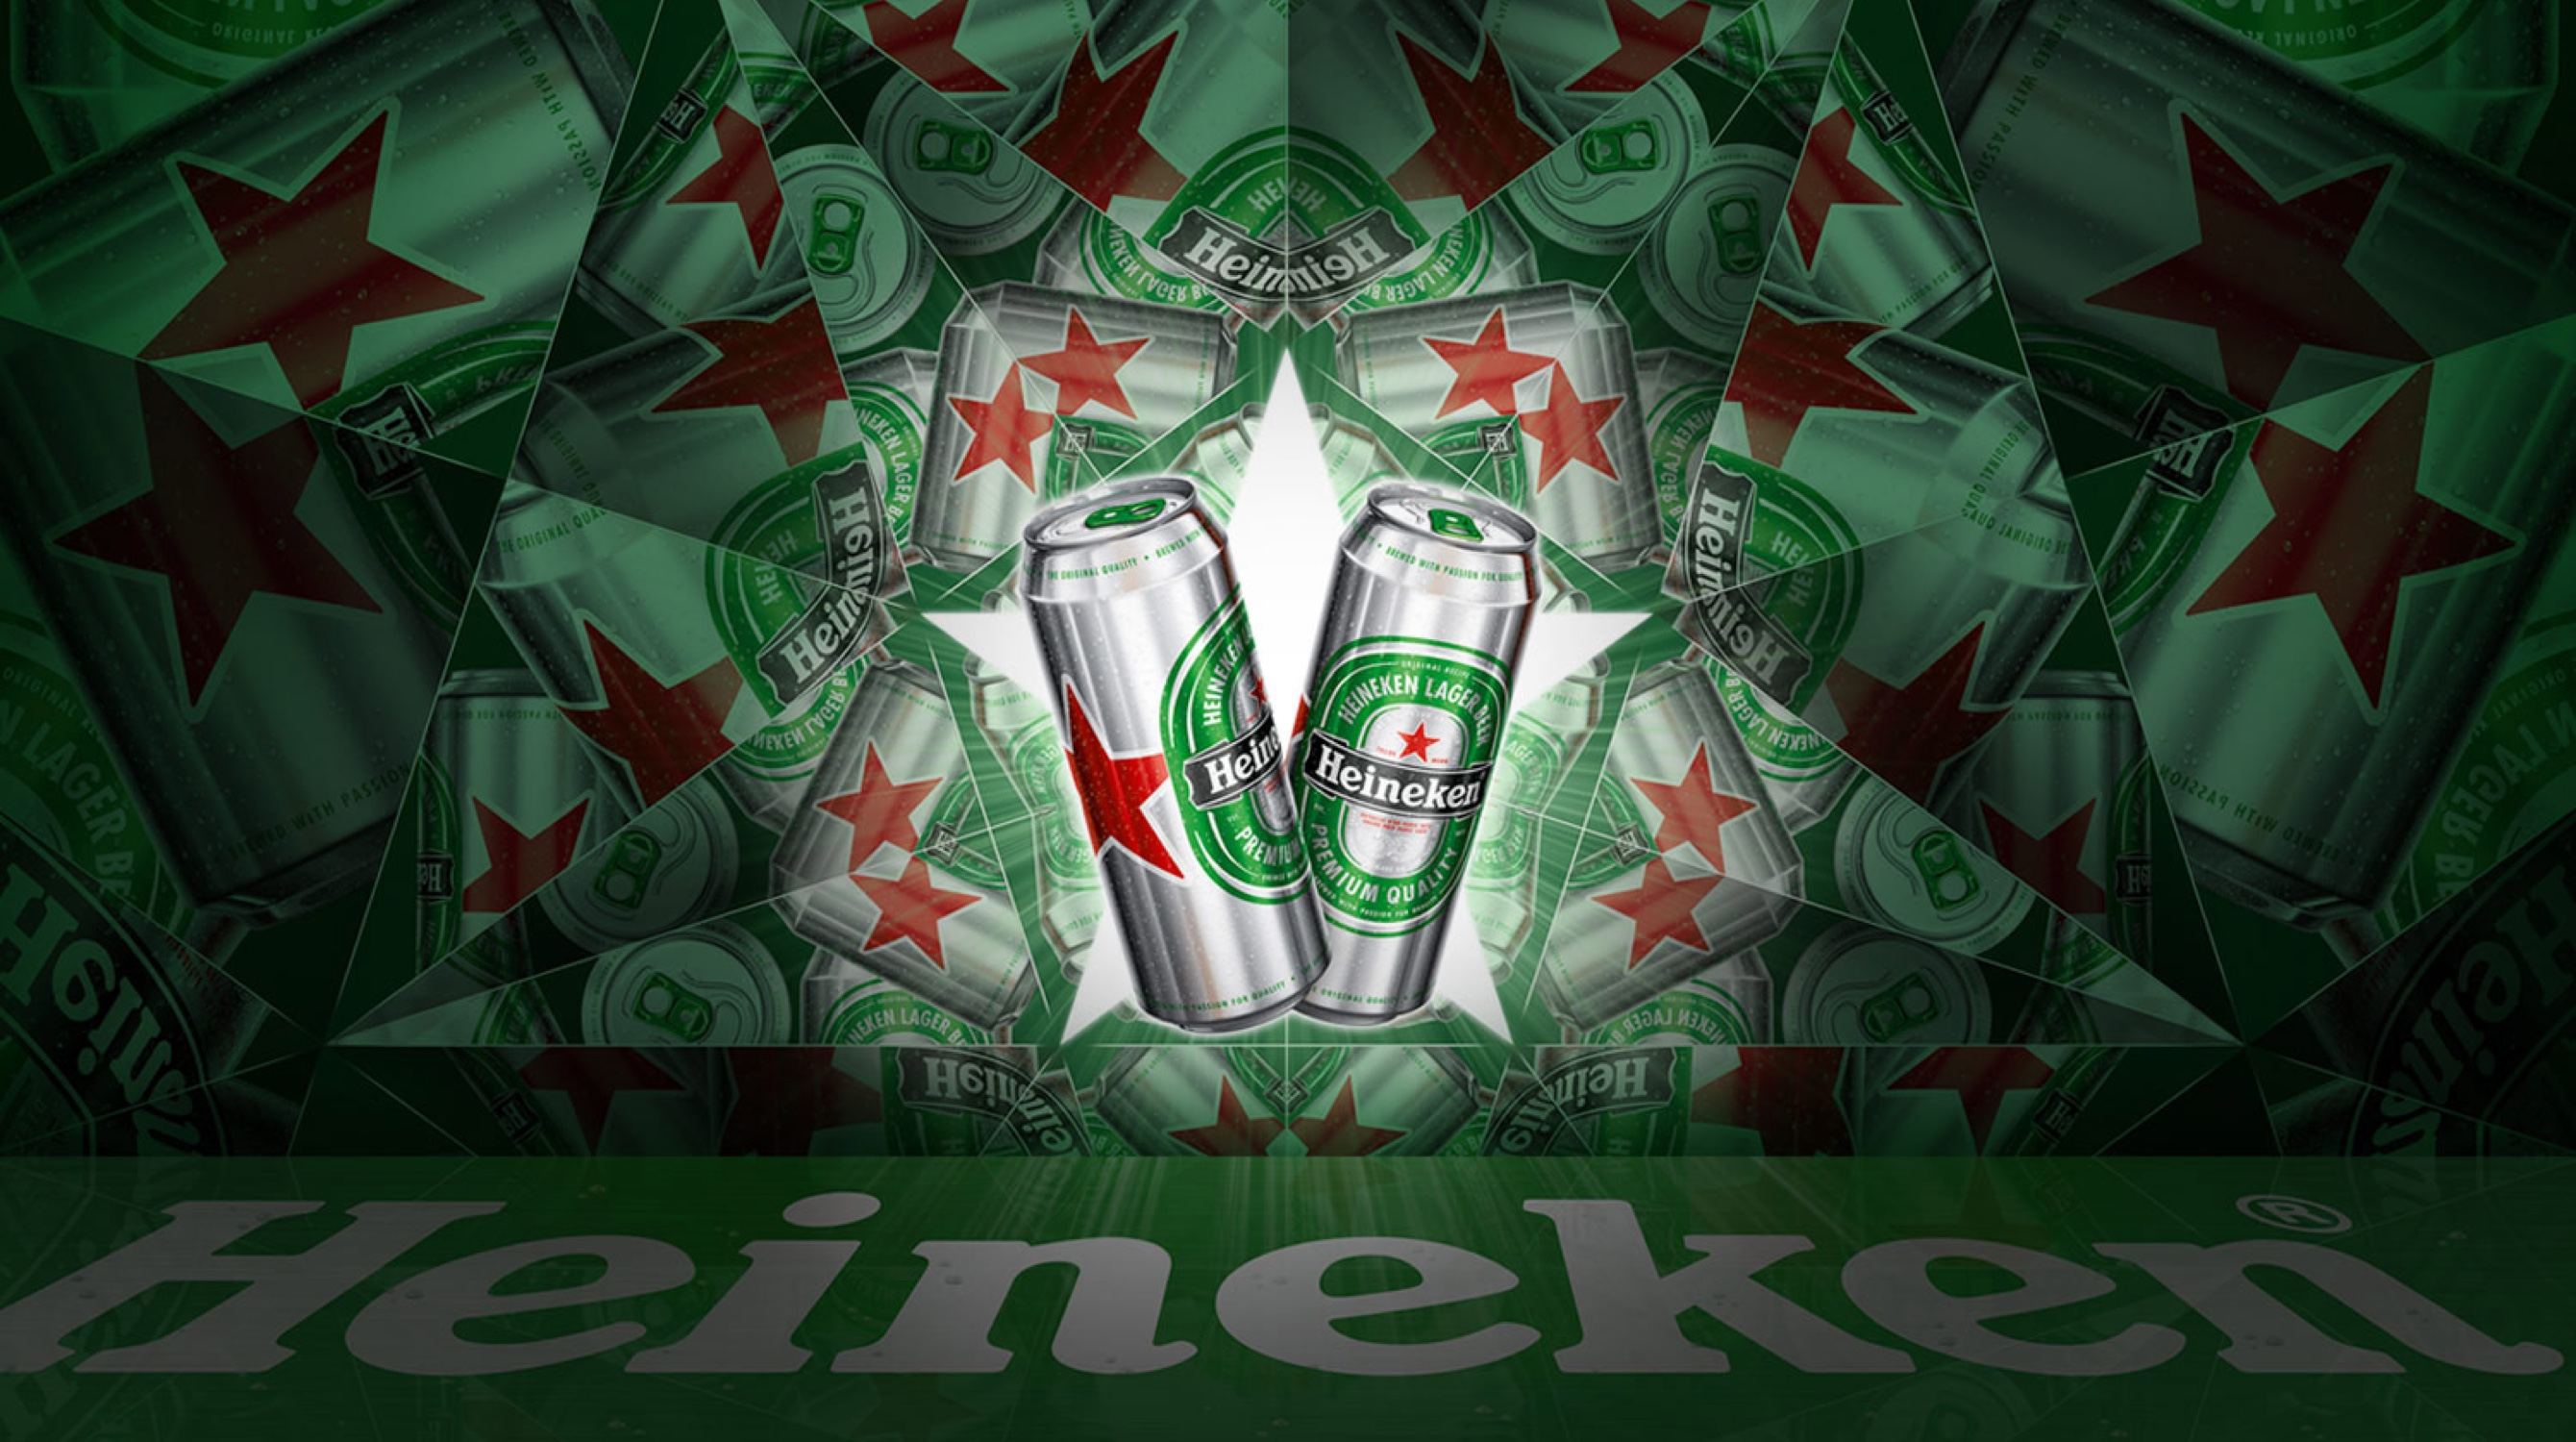 Heineken: The New Star